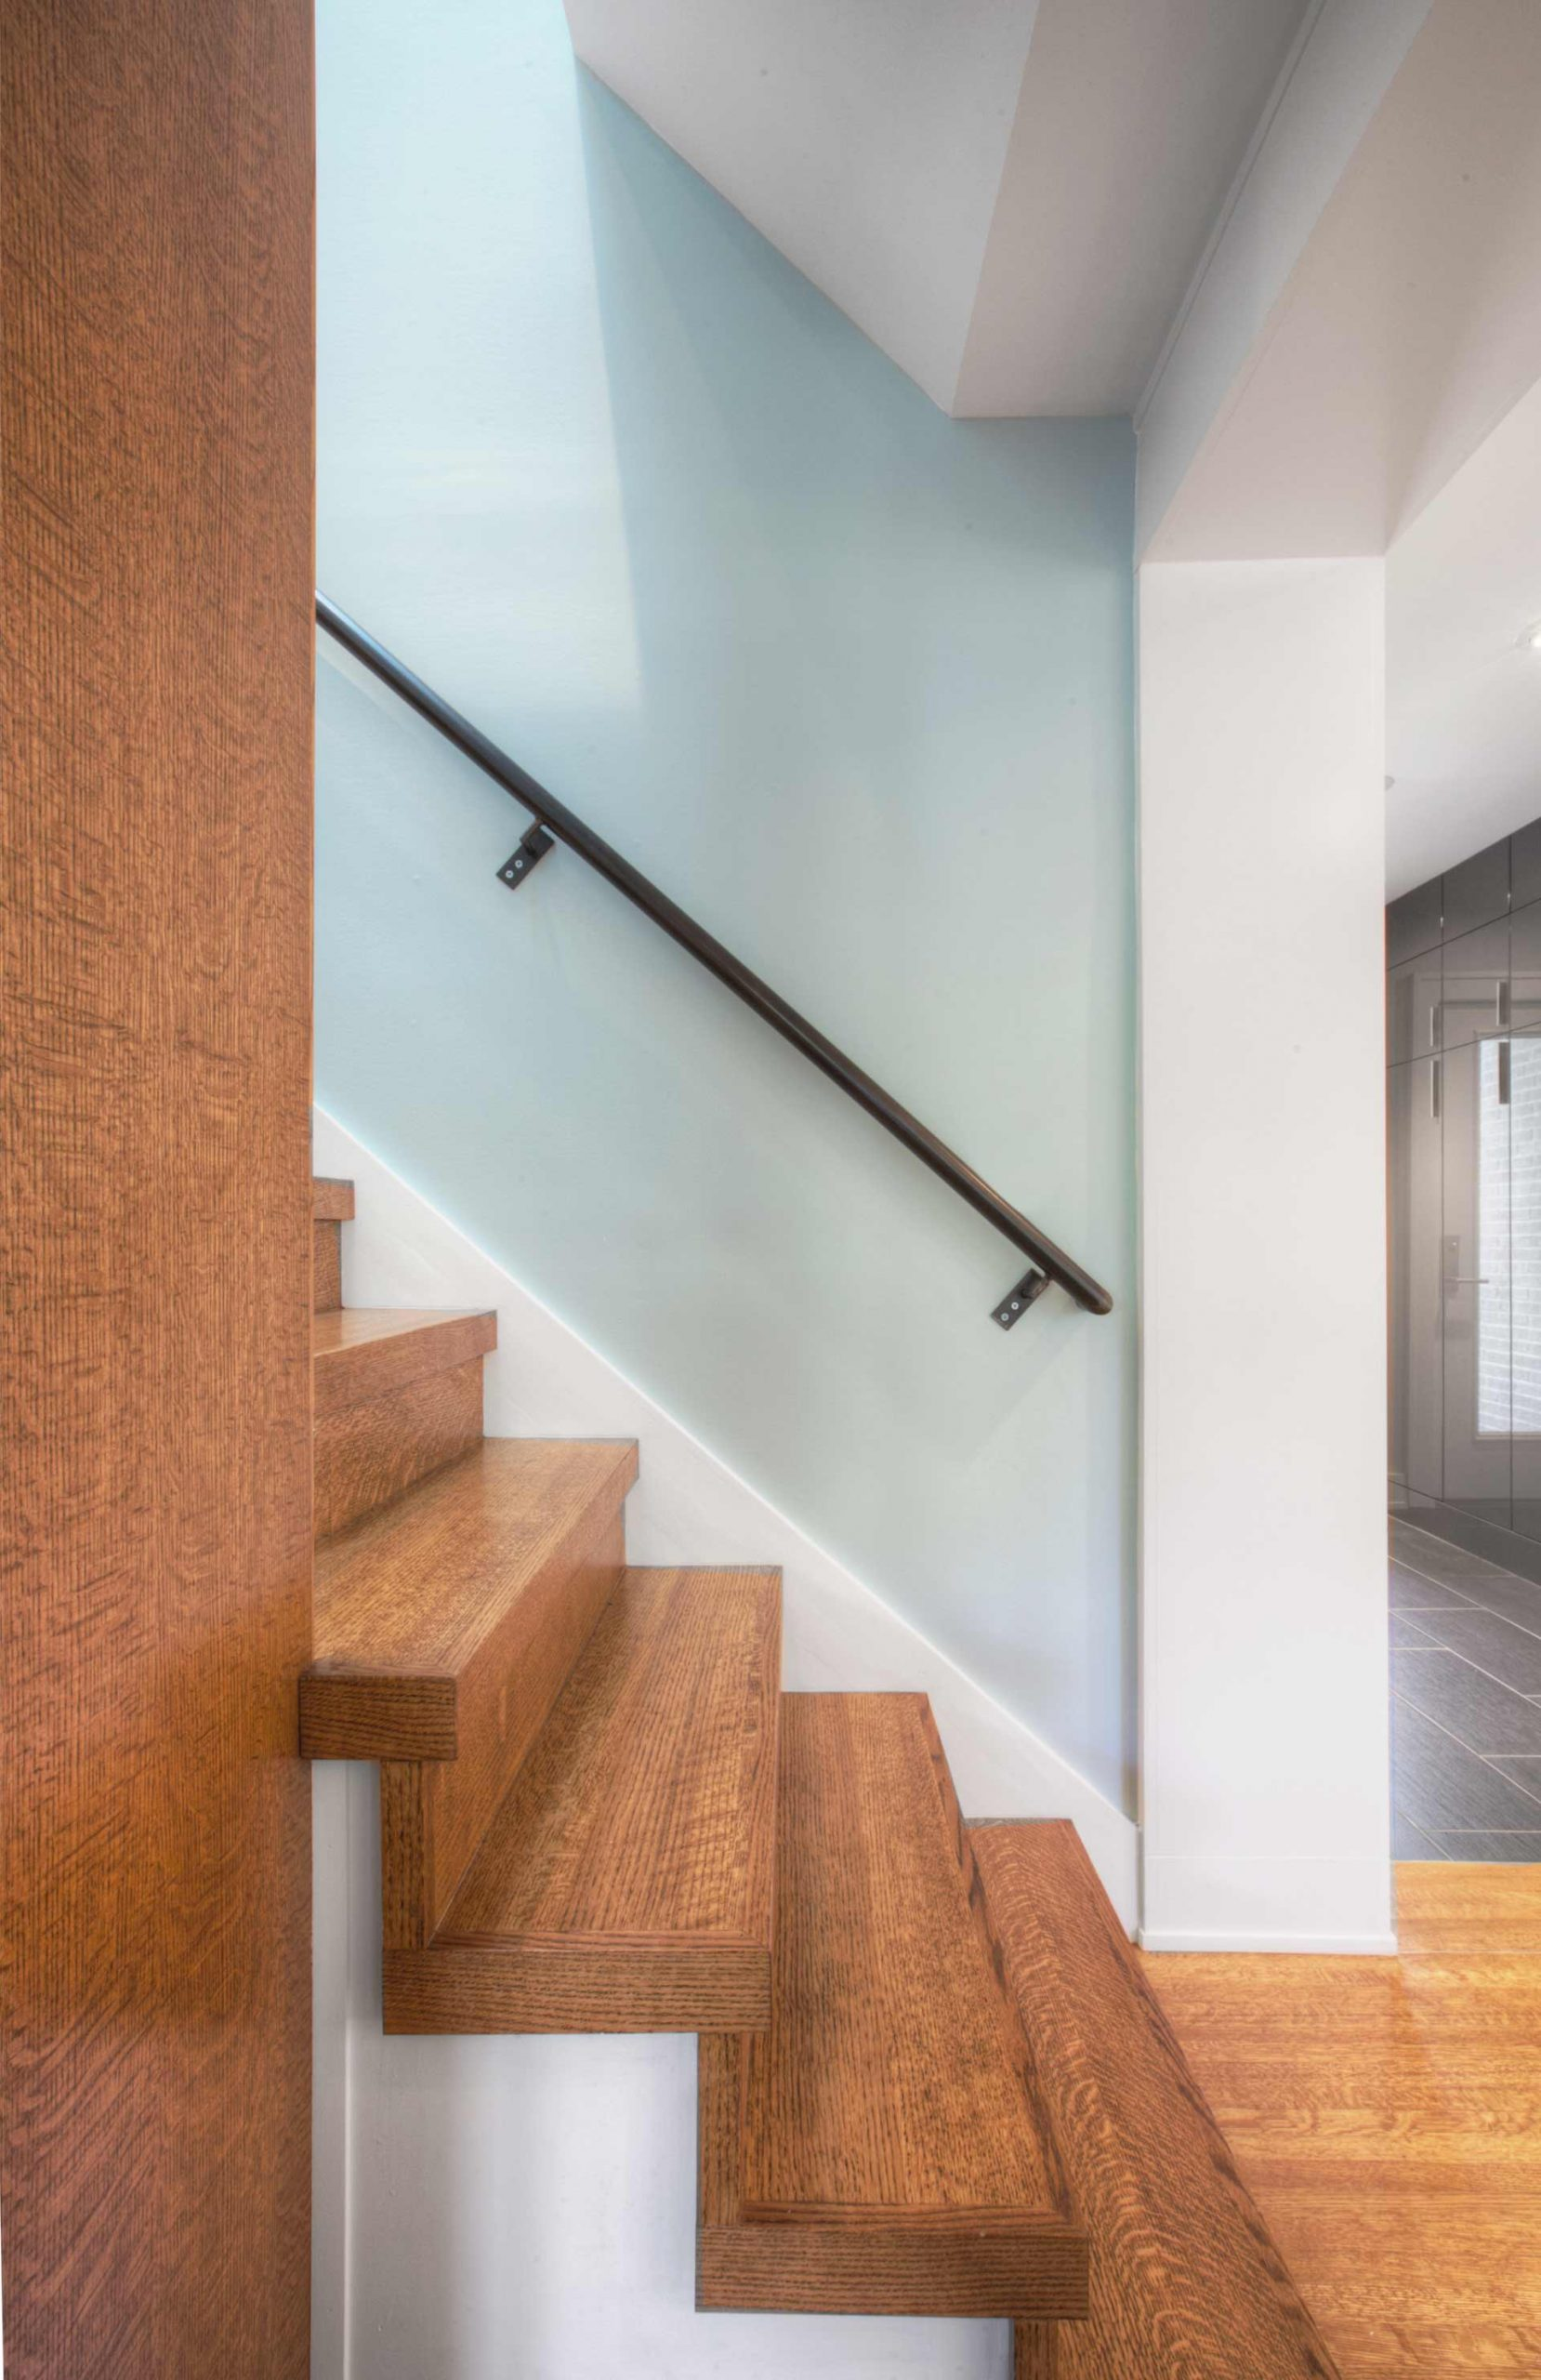 New back stair leads directly from Family Room/Kitchen area to Bedroom Suites upstairs. Oak details integrate with built-in shelves above and below - Butler Tarkington Modern Tudor - Indianapolis, IN